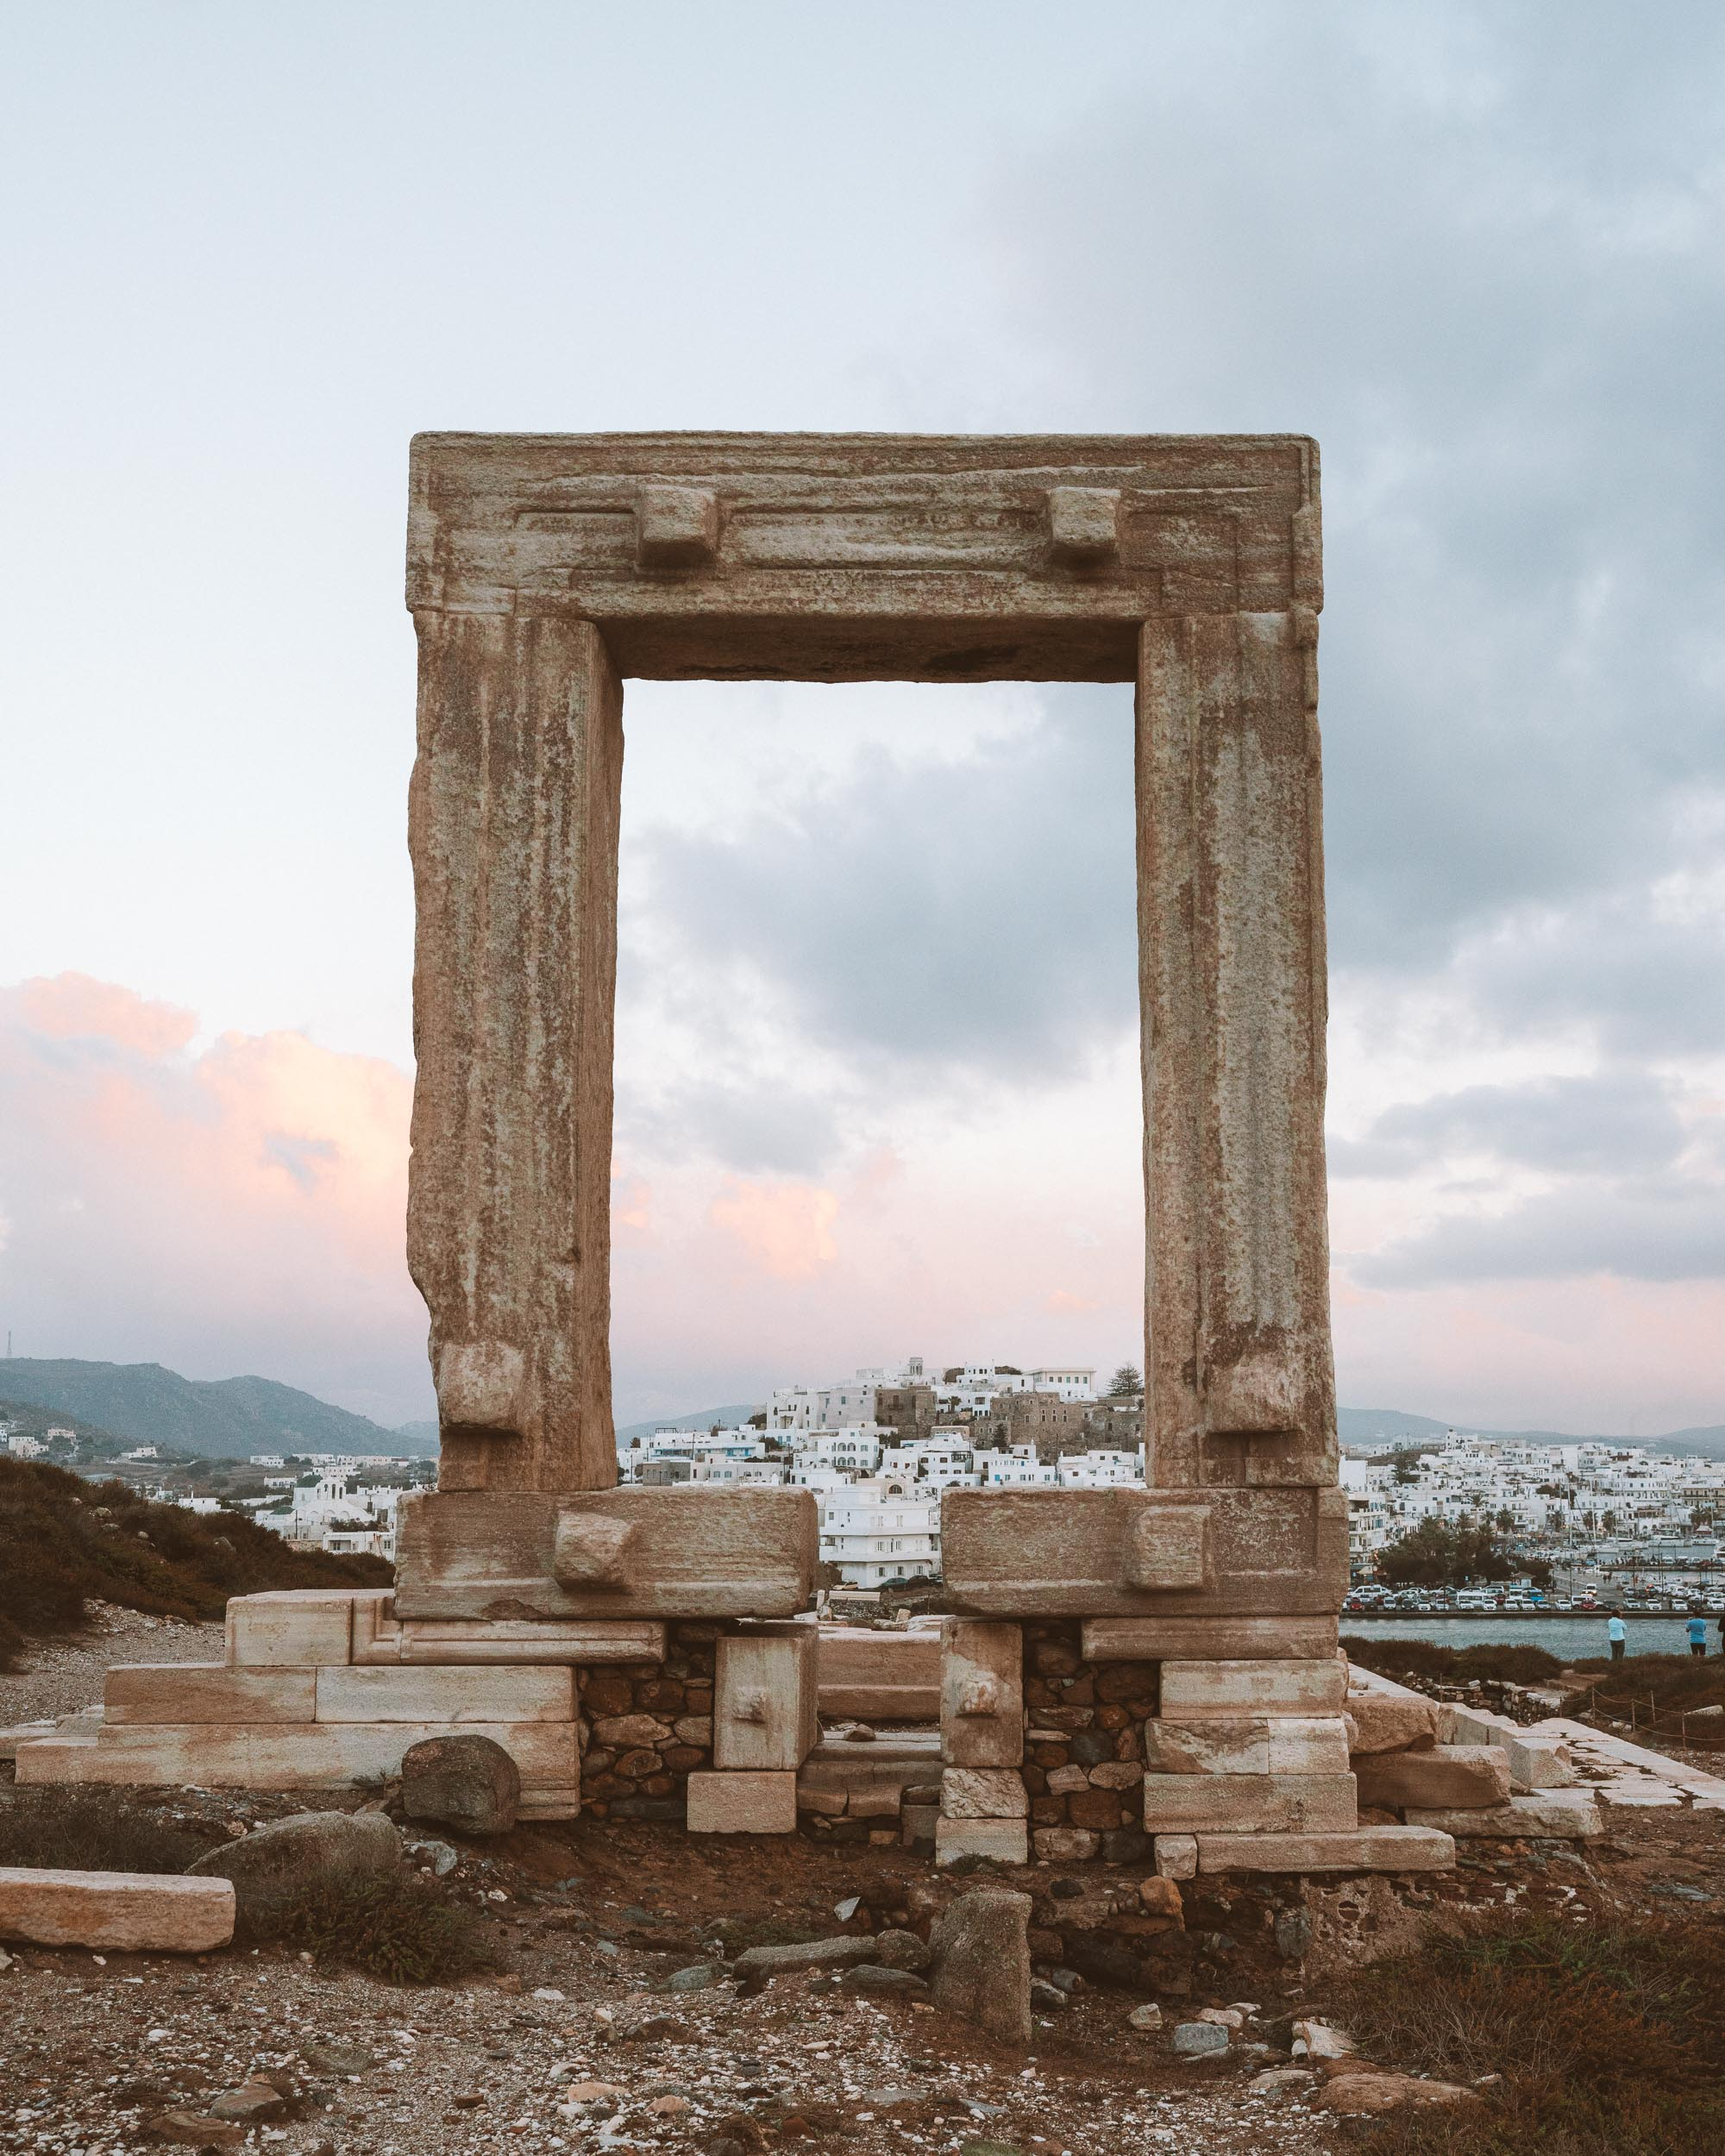 Protara arch in Naxos, Greek Islands at sunset via @finduslost